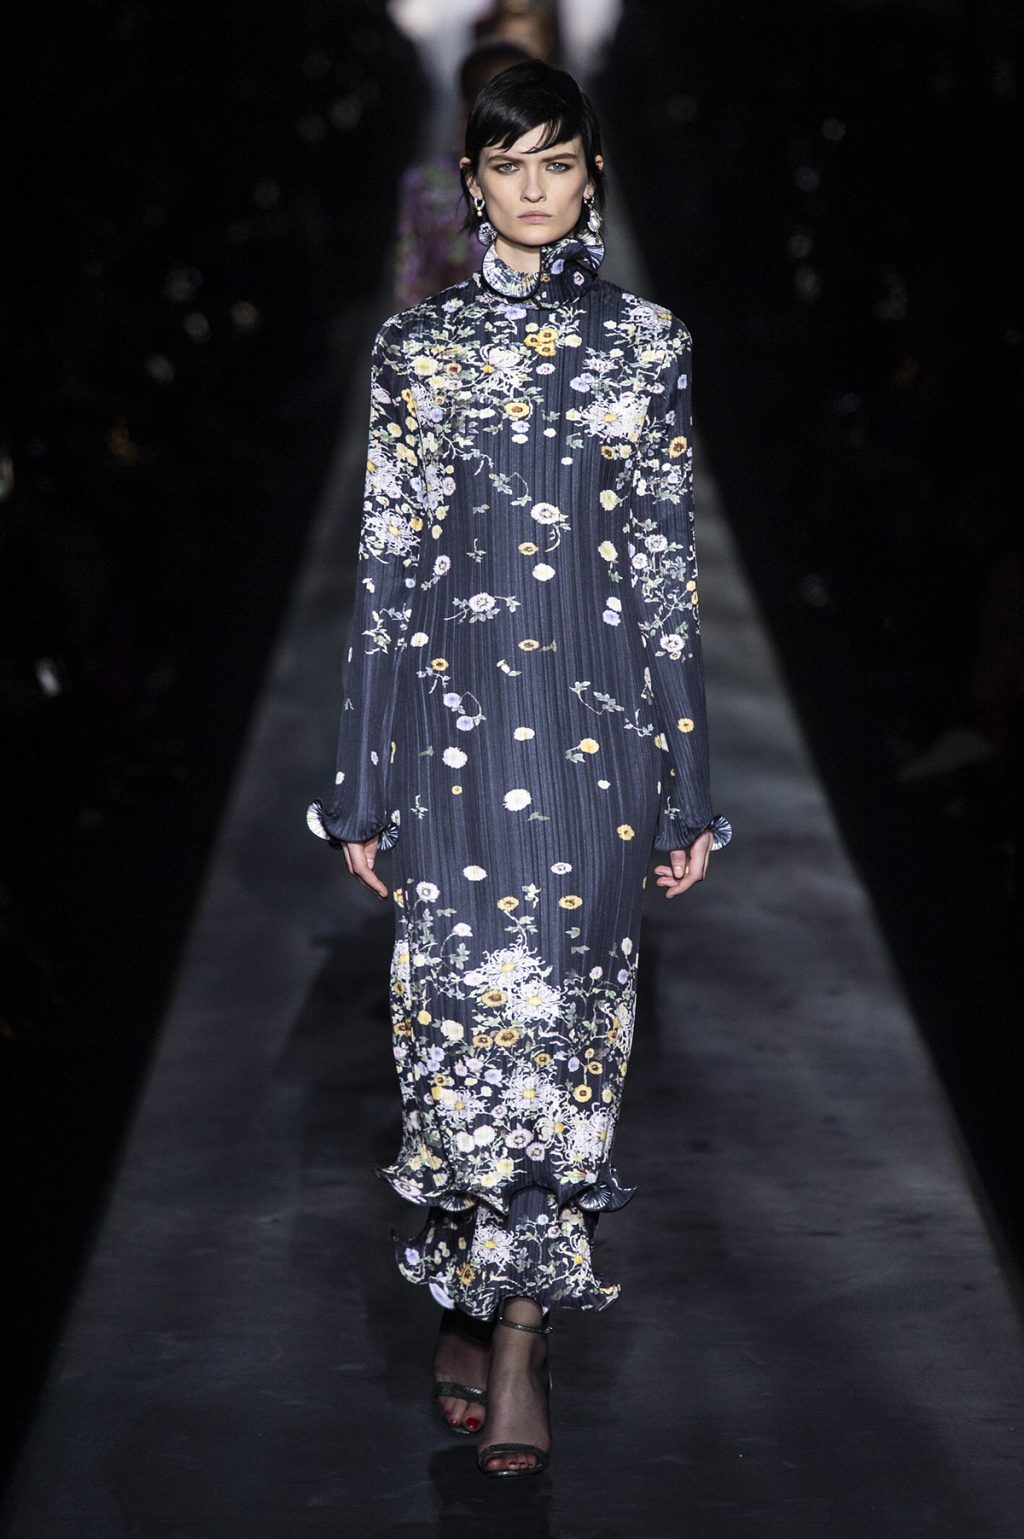 Take a Walk Through a Winter Garden with Givenchy Fall/Winter 2019